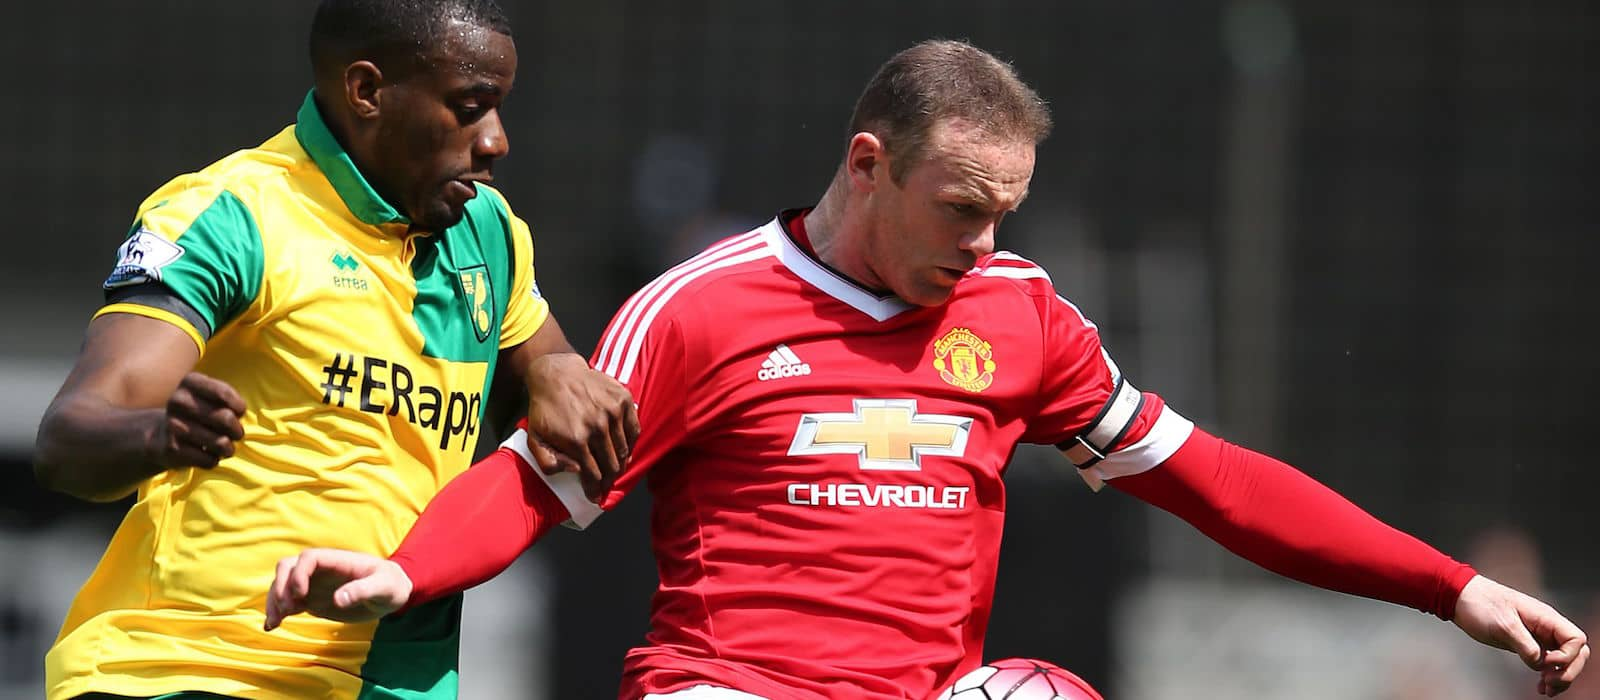 Is Wayne Rooney's future in central midfield for Man United and England?